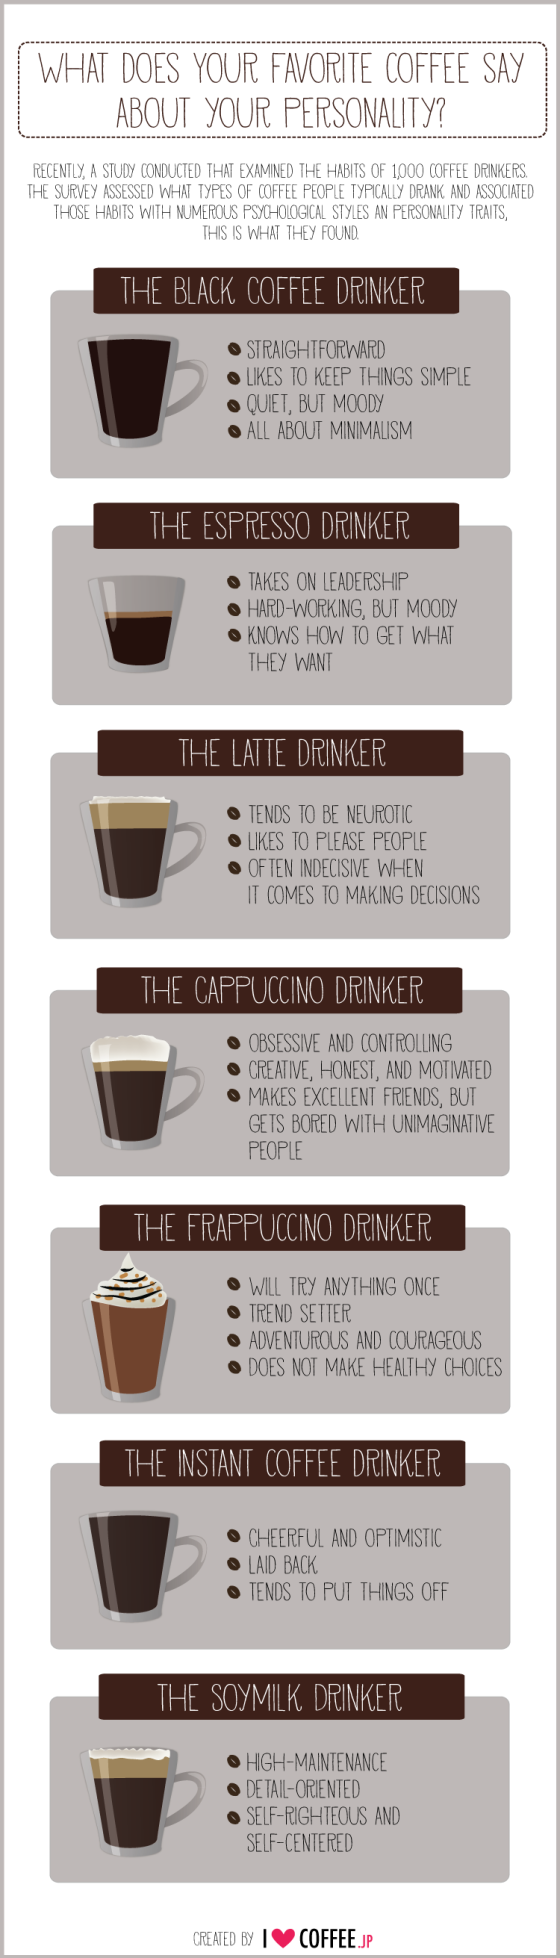 coffee_personality